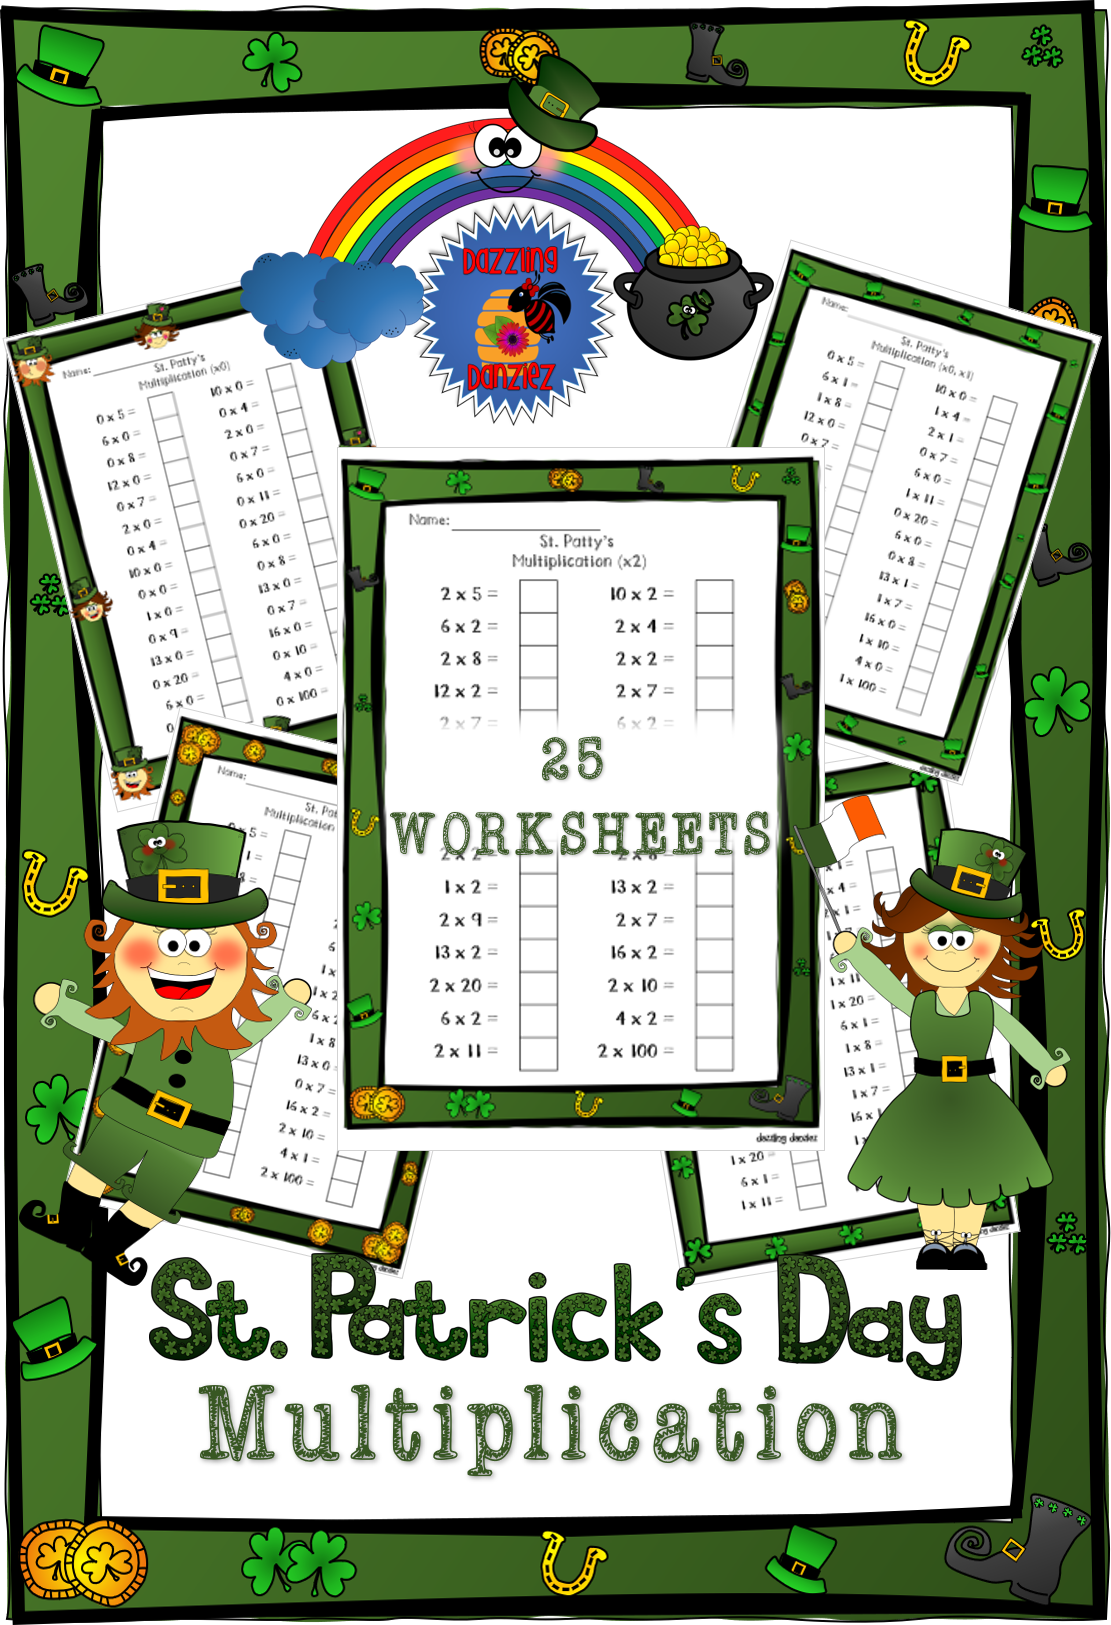 St Patty S Multiplication In